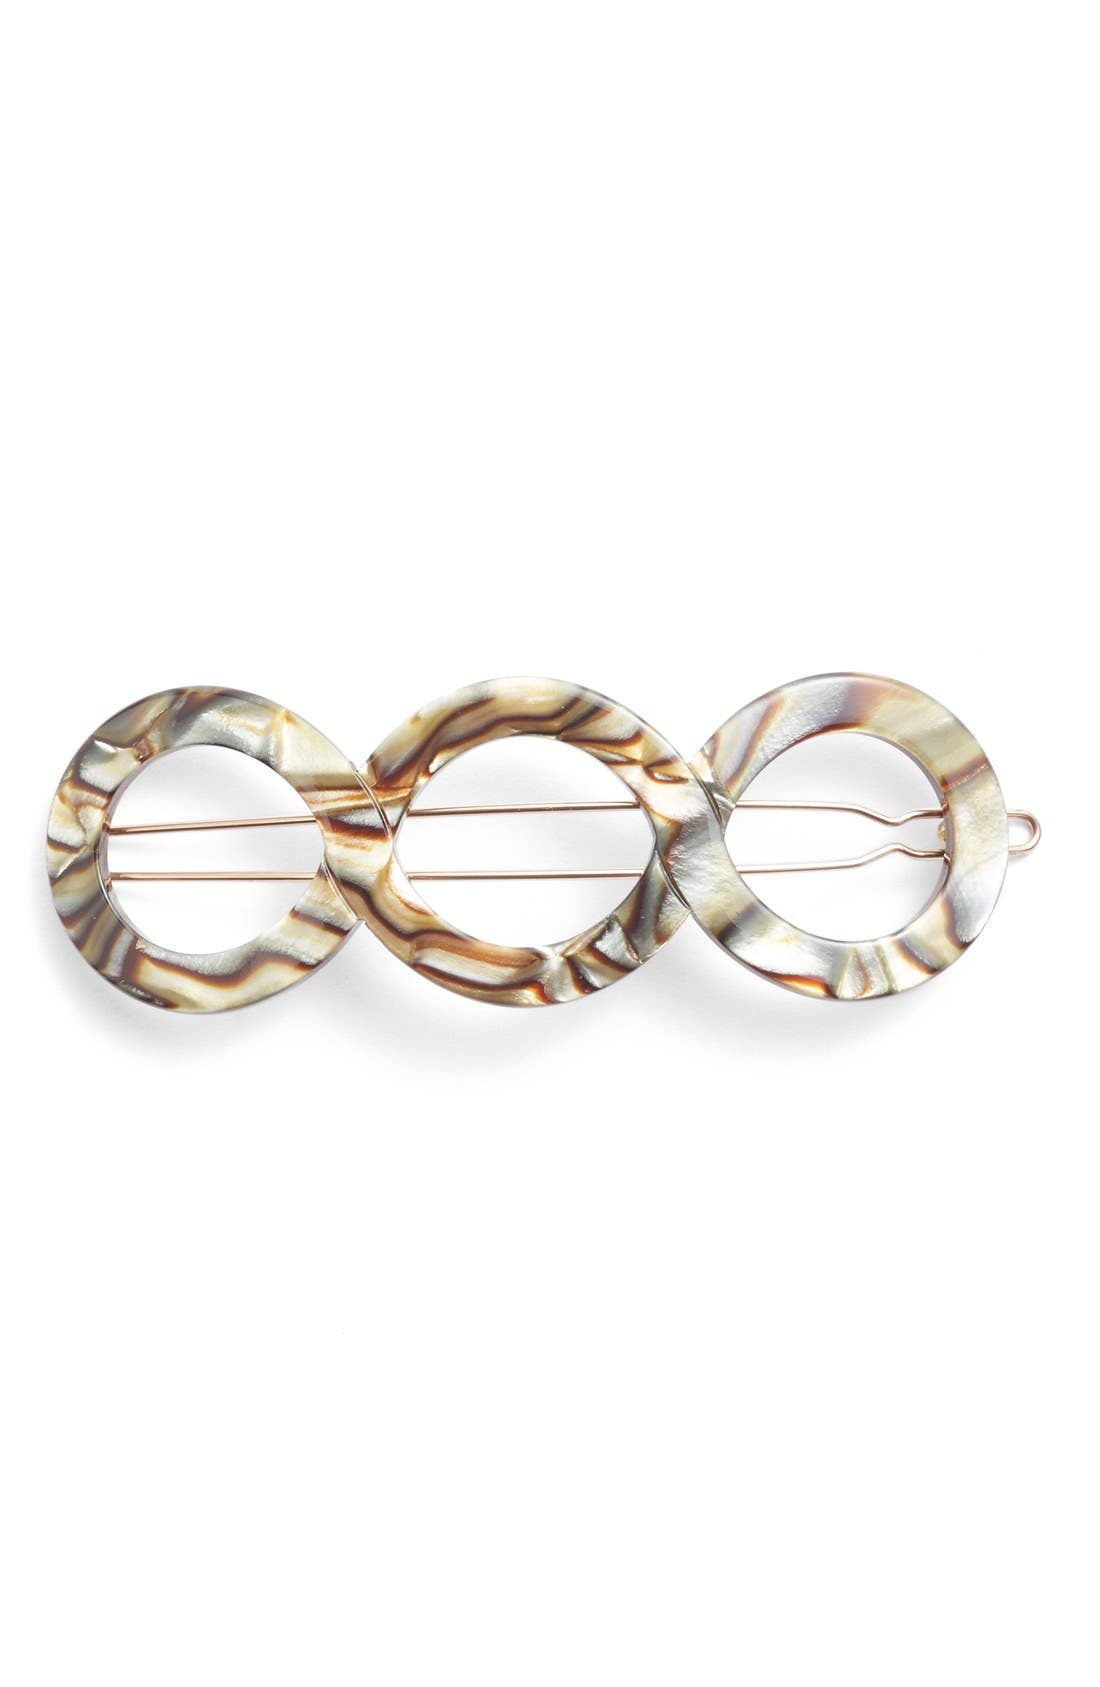 Triple Circle Tige Boule Barrette,                             Main thumbnail 1, color,                             Onyx